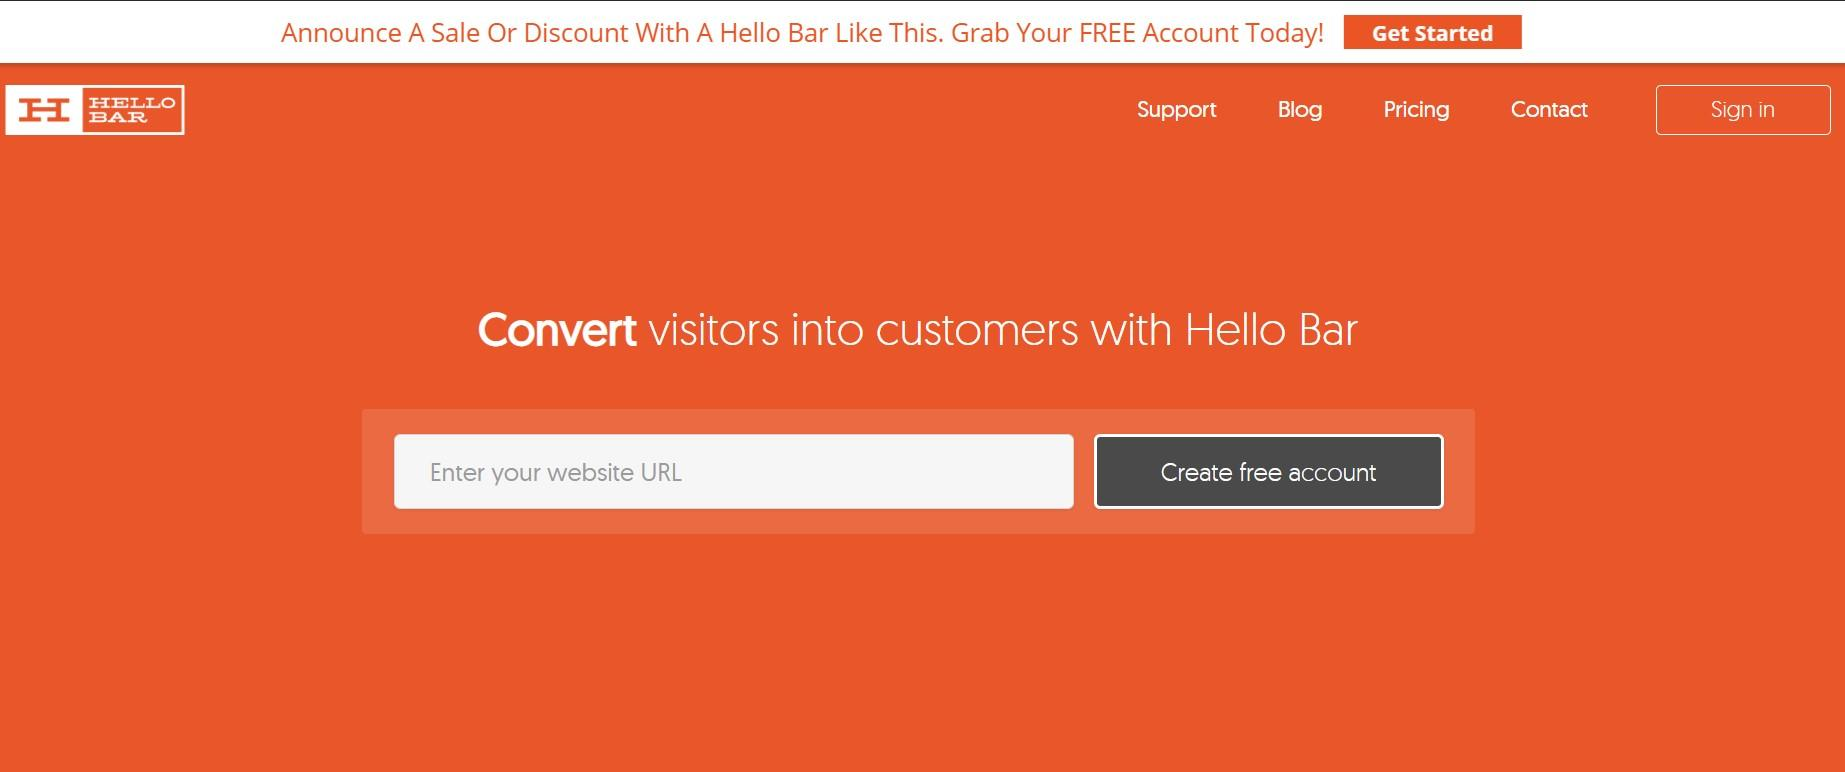 Hello bar - Website Engagement Tool